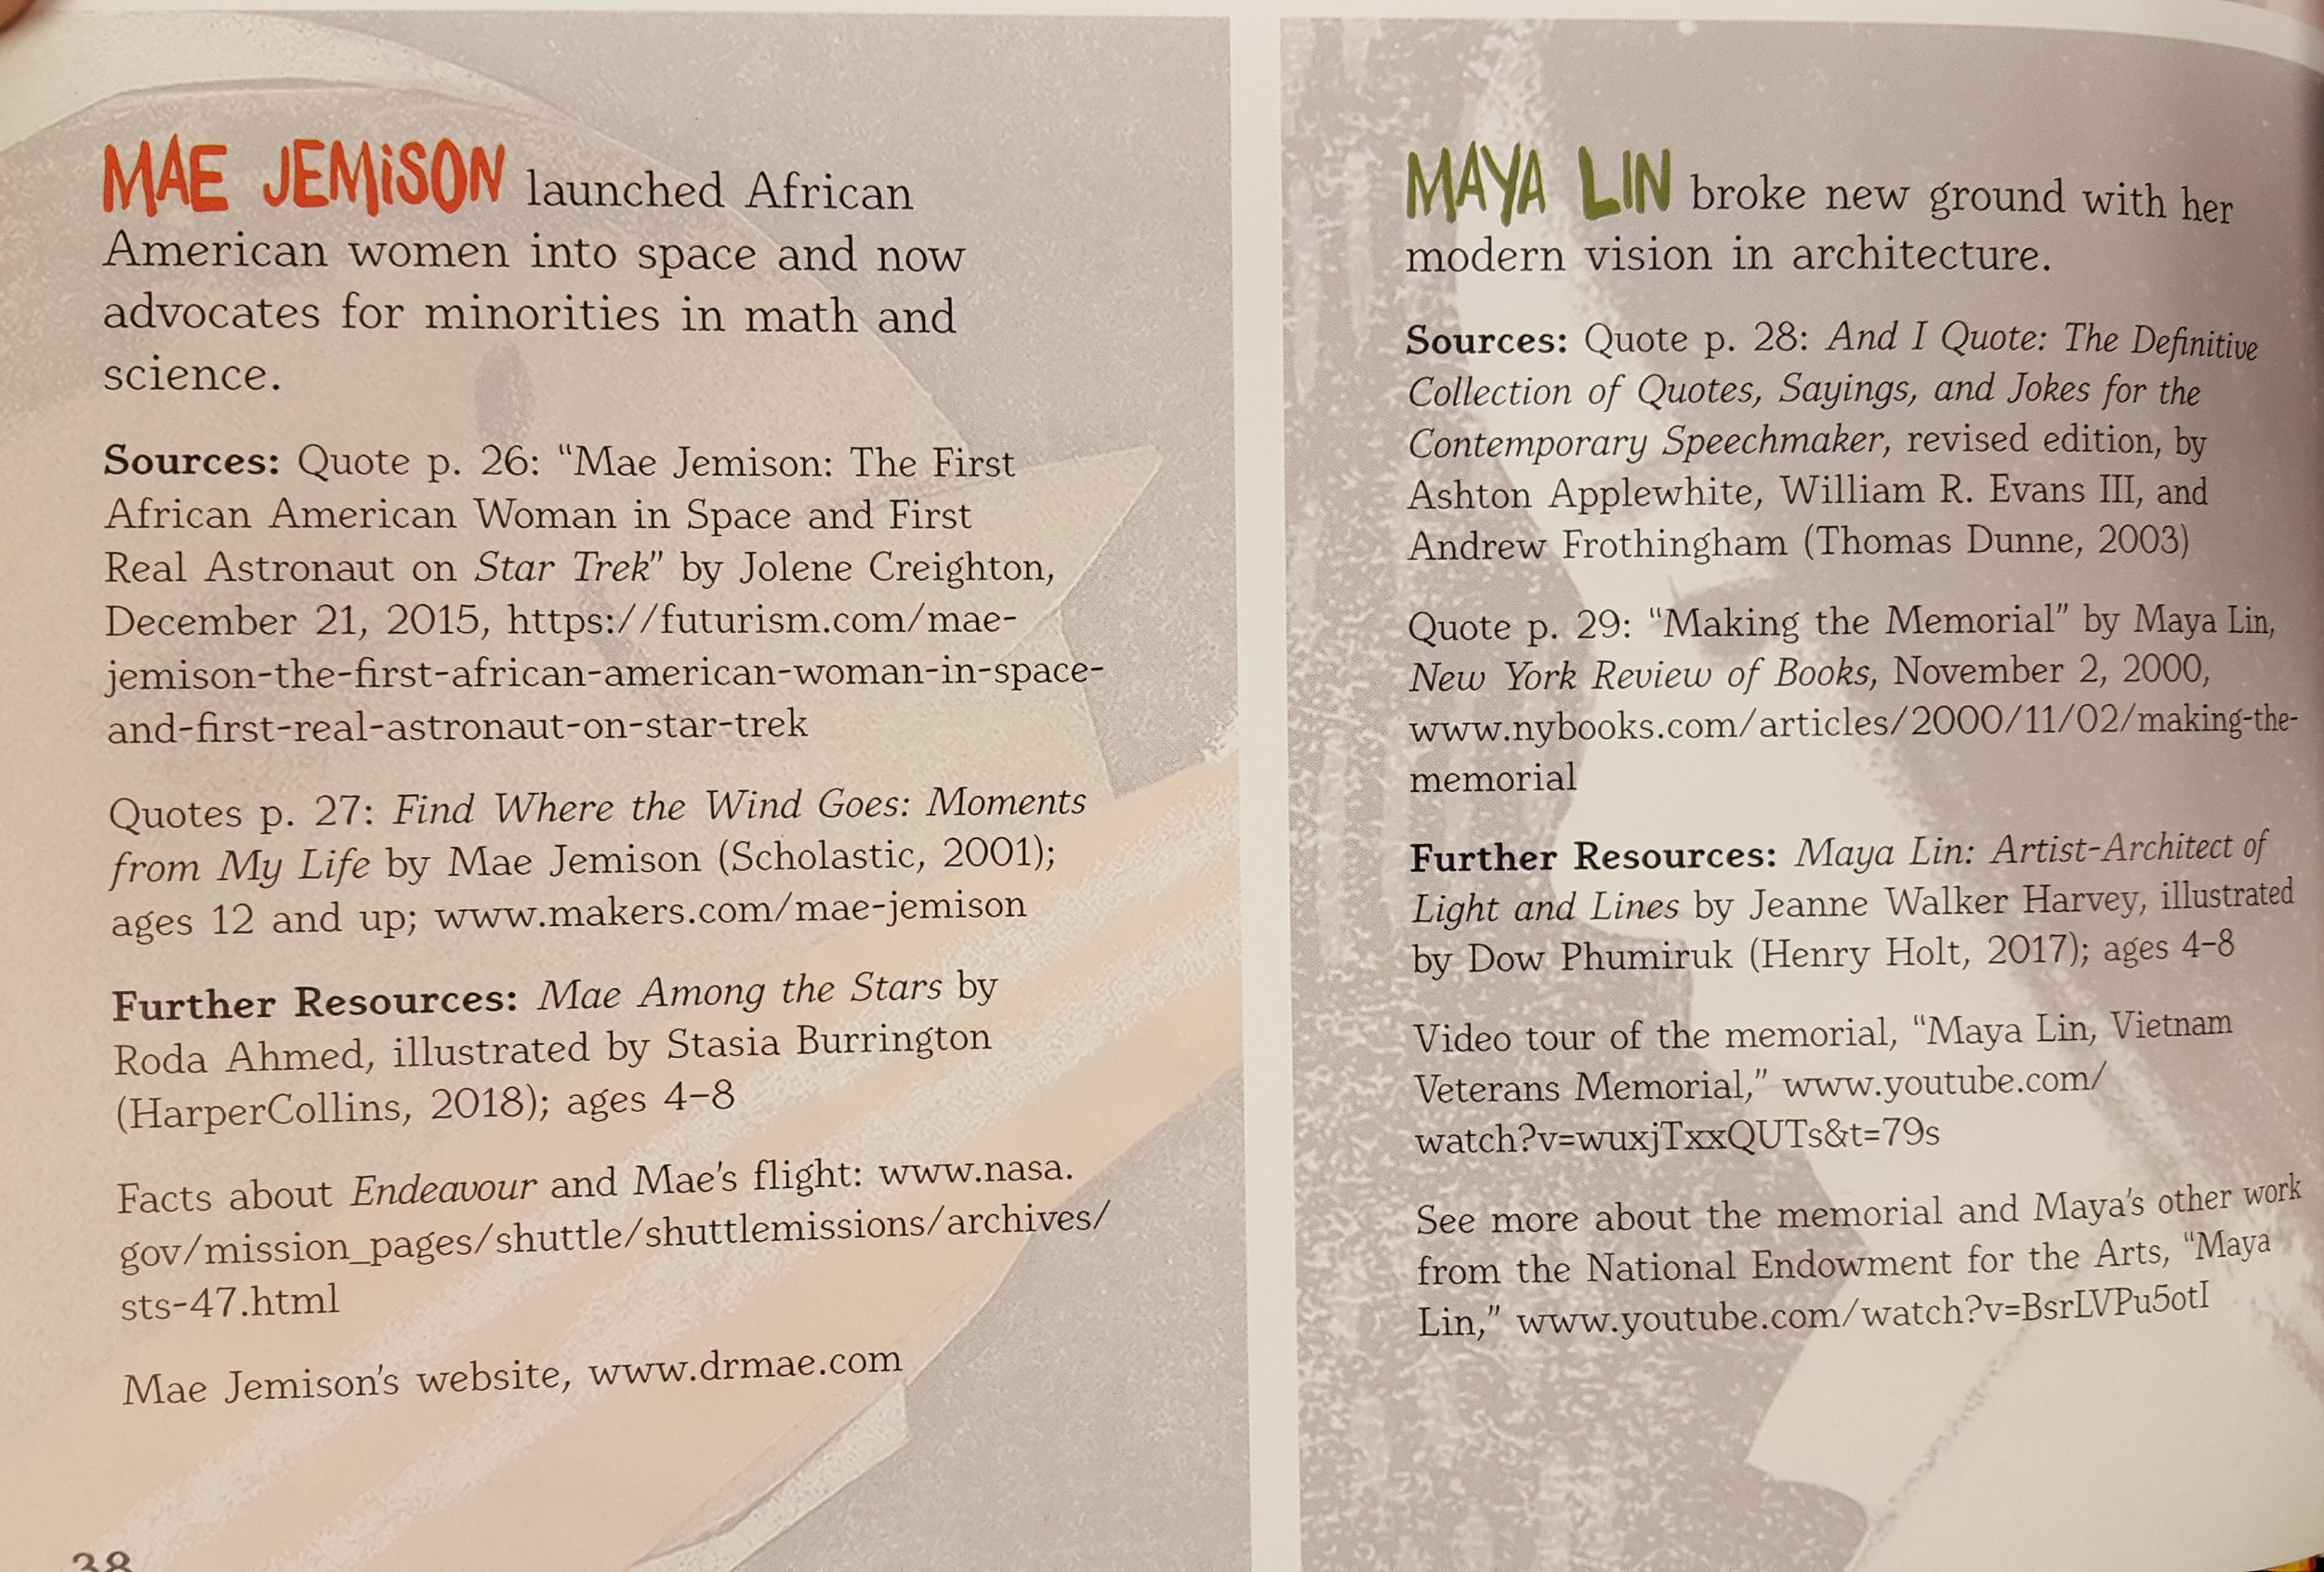 Excerpt from the bibliography.